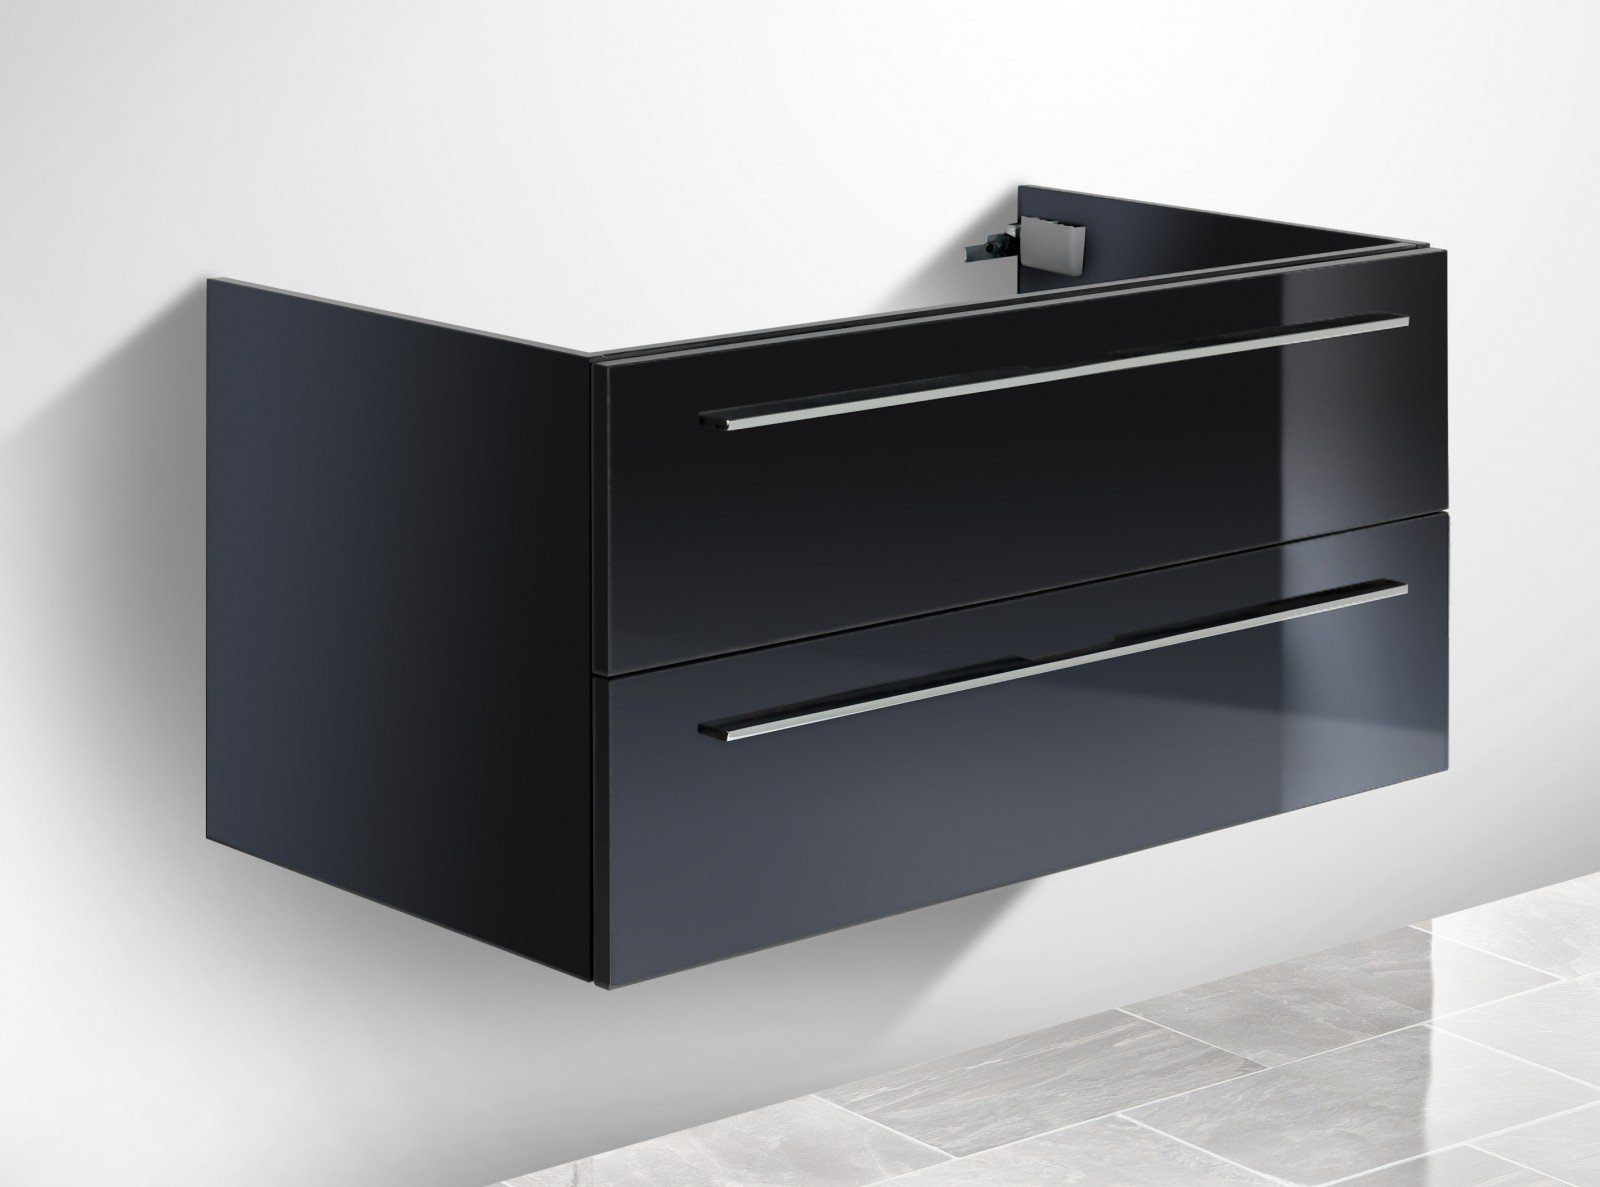 unterschrank f r keramag renova nr 1 plan 60 cm. Black Bedroom Furniture Sets. Home Design Ideas